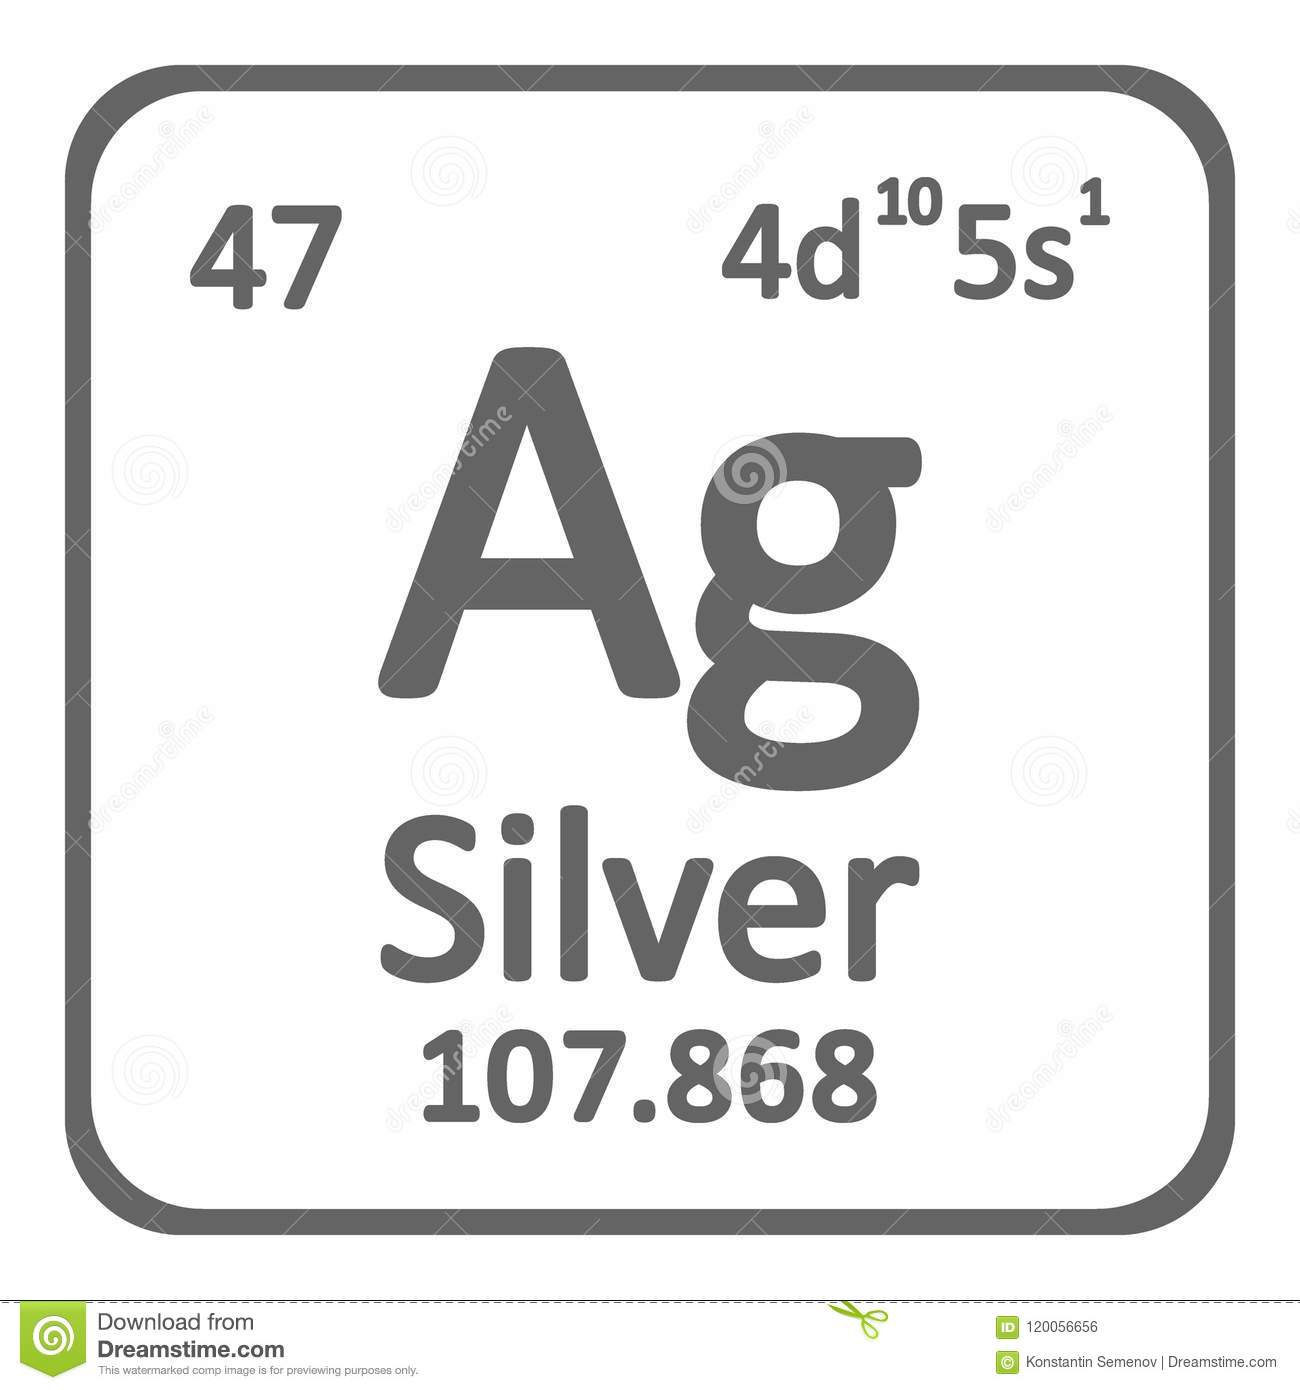 Periodic table element silver icon stock illustration download periodic table element silver icon stock illustration illustration of grey name urtaz Gallery